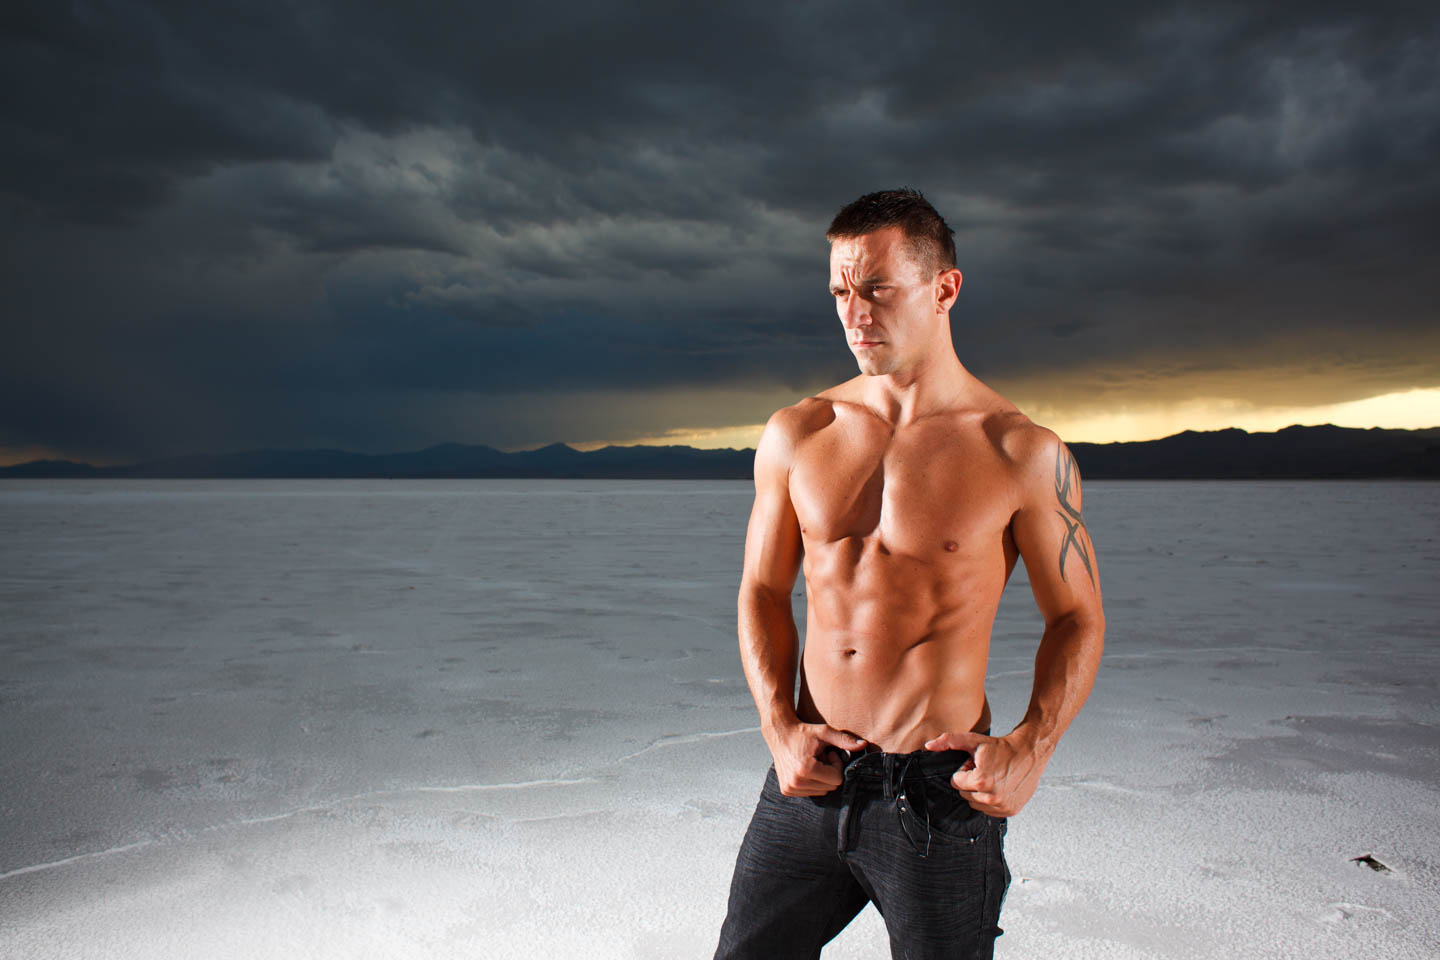 Jacob models for the photo shoot on the bonneville salt flats